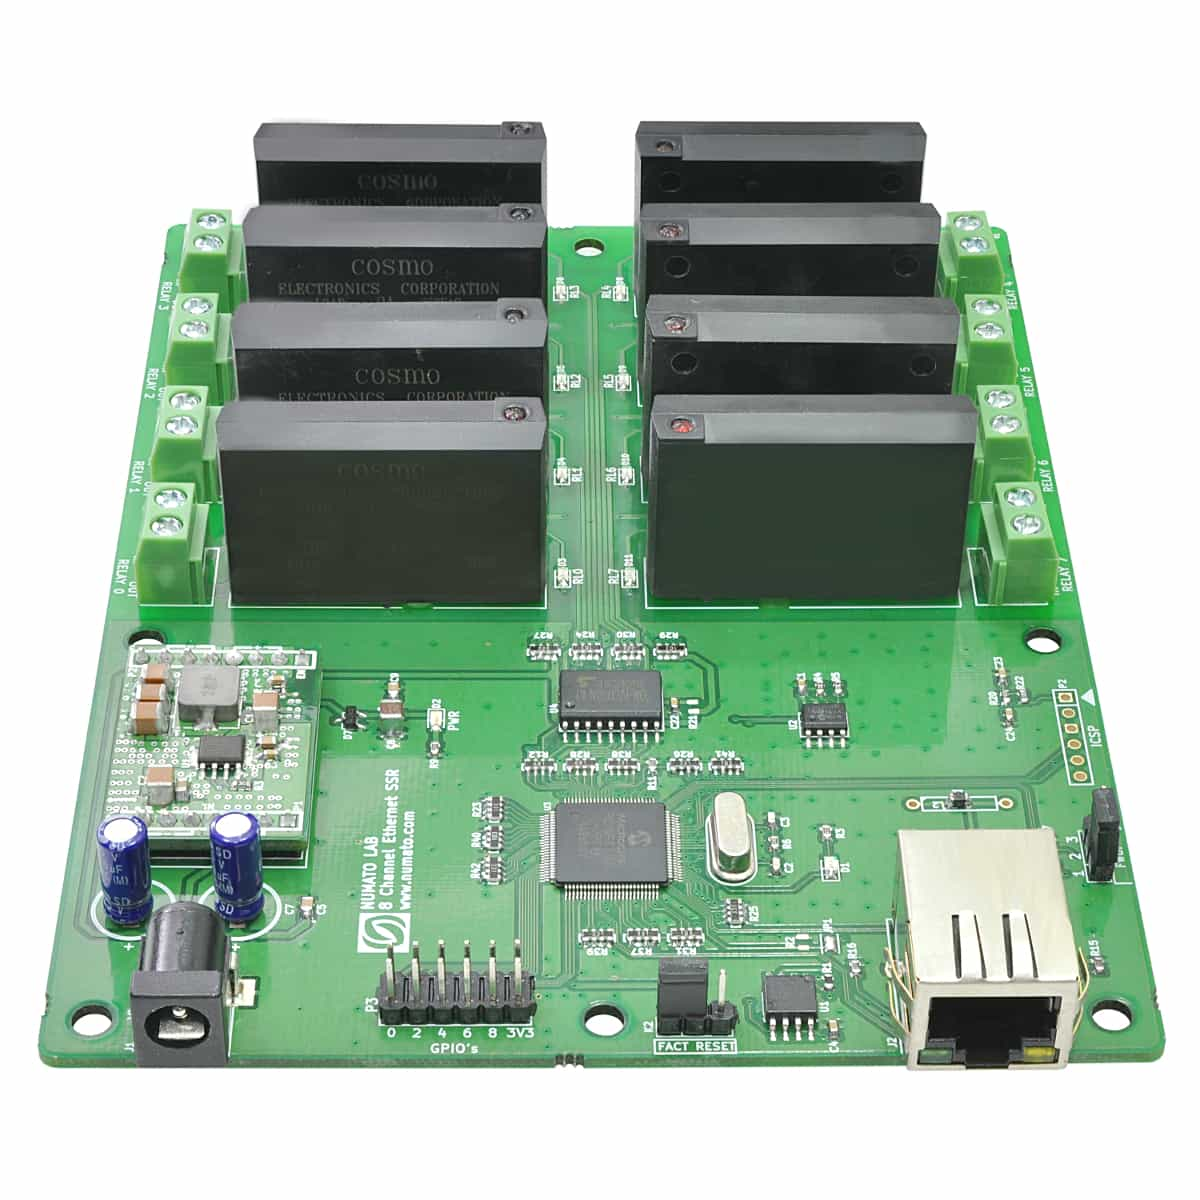 8 Channel Ethernet Solid State Relay Module Numato Lab Wiring Diagram